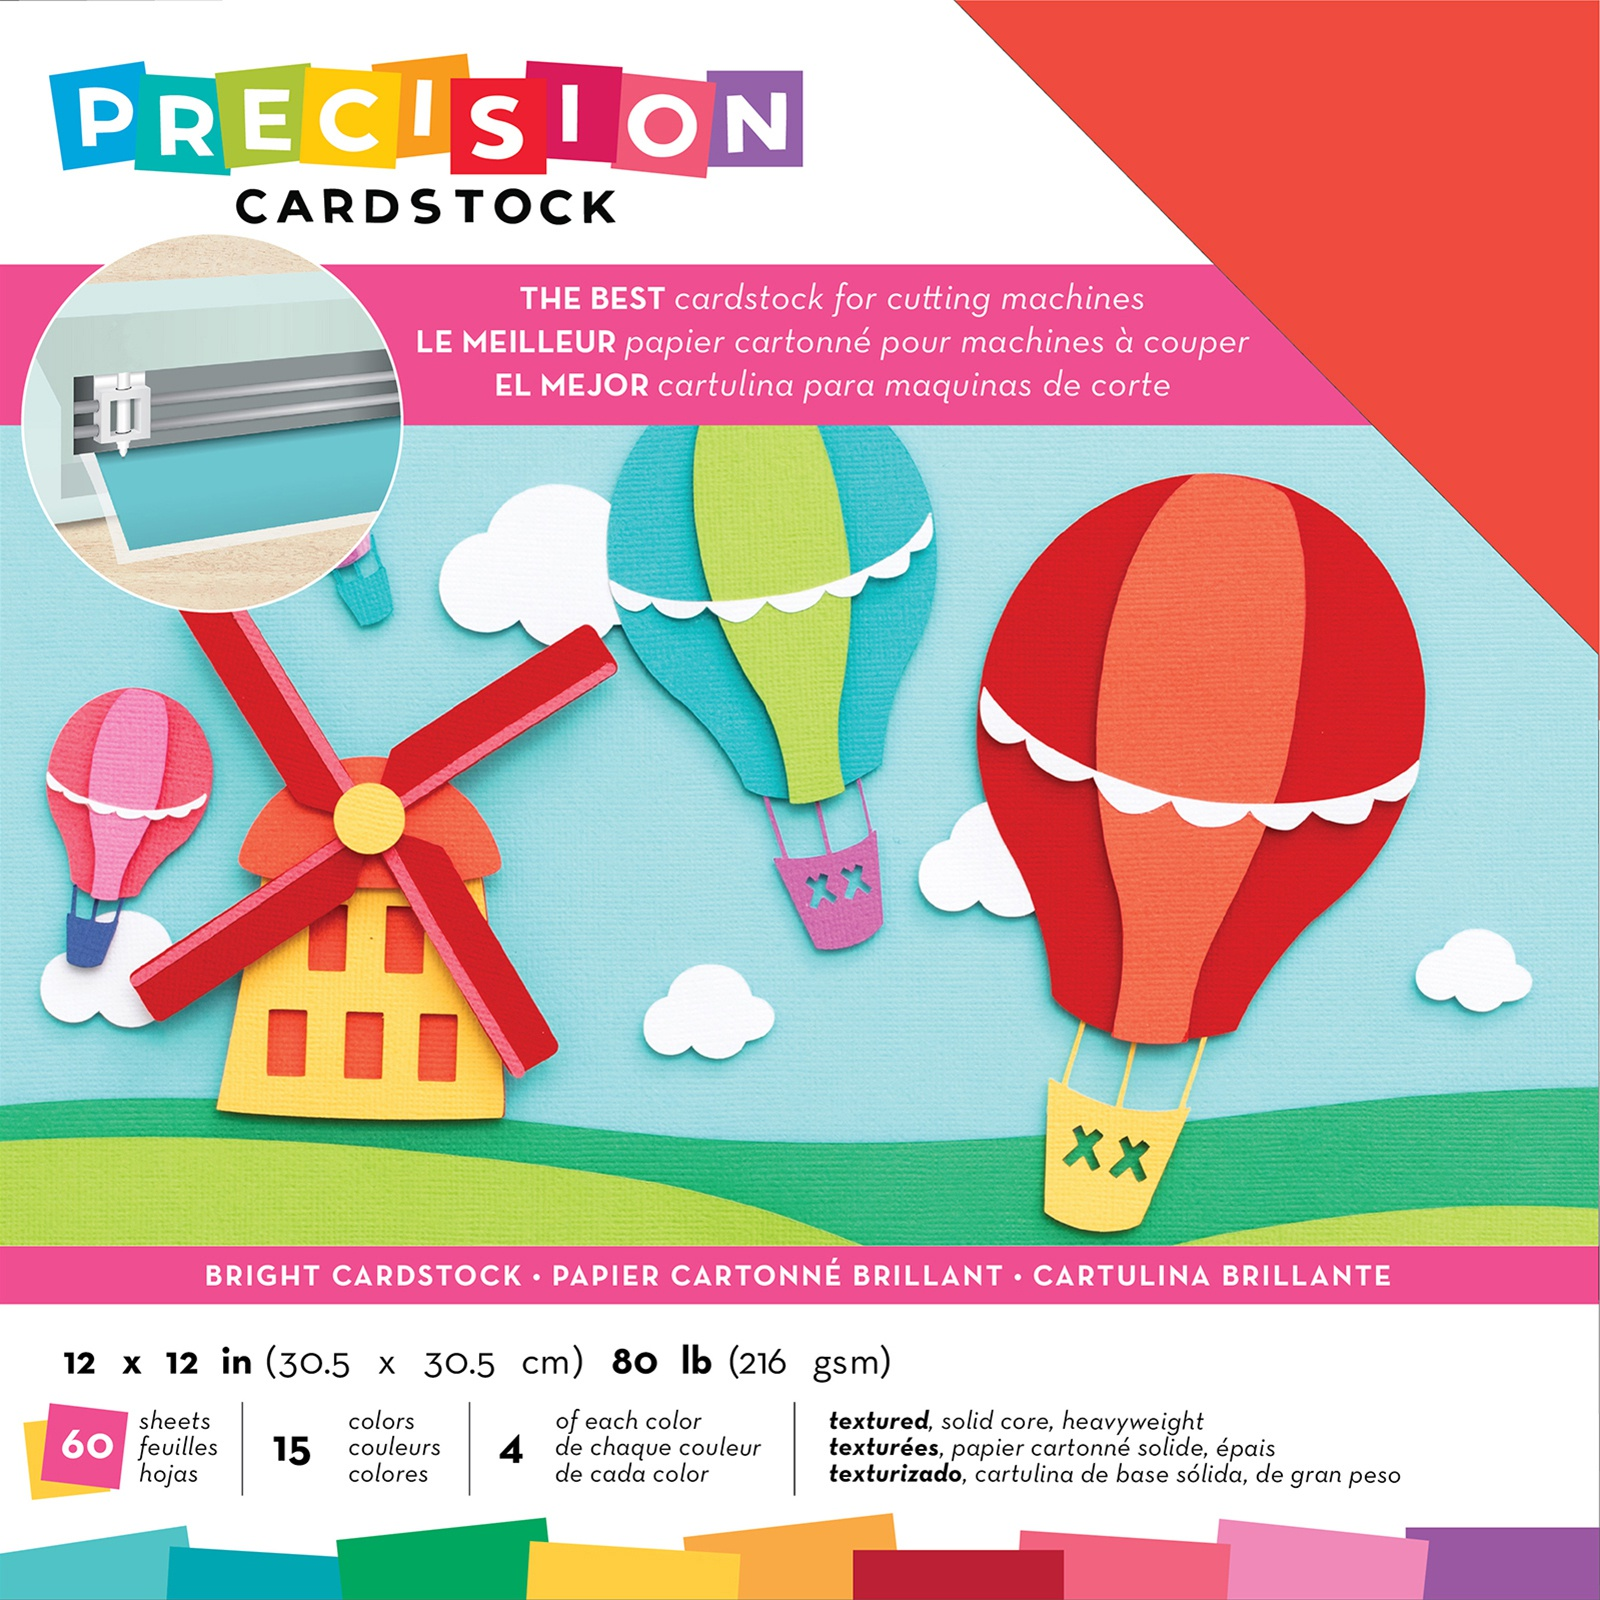 AC Precision Cardstock - 12x12 Variety Pack, Brights, Textured, 60/pkg